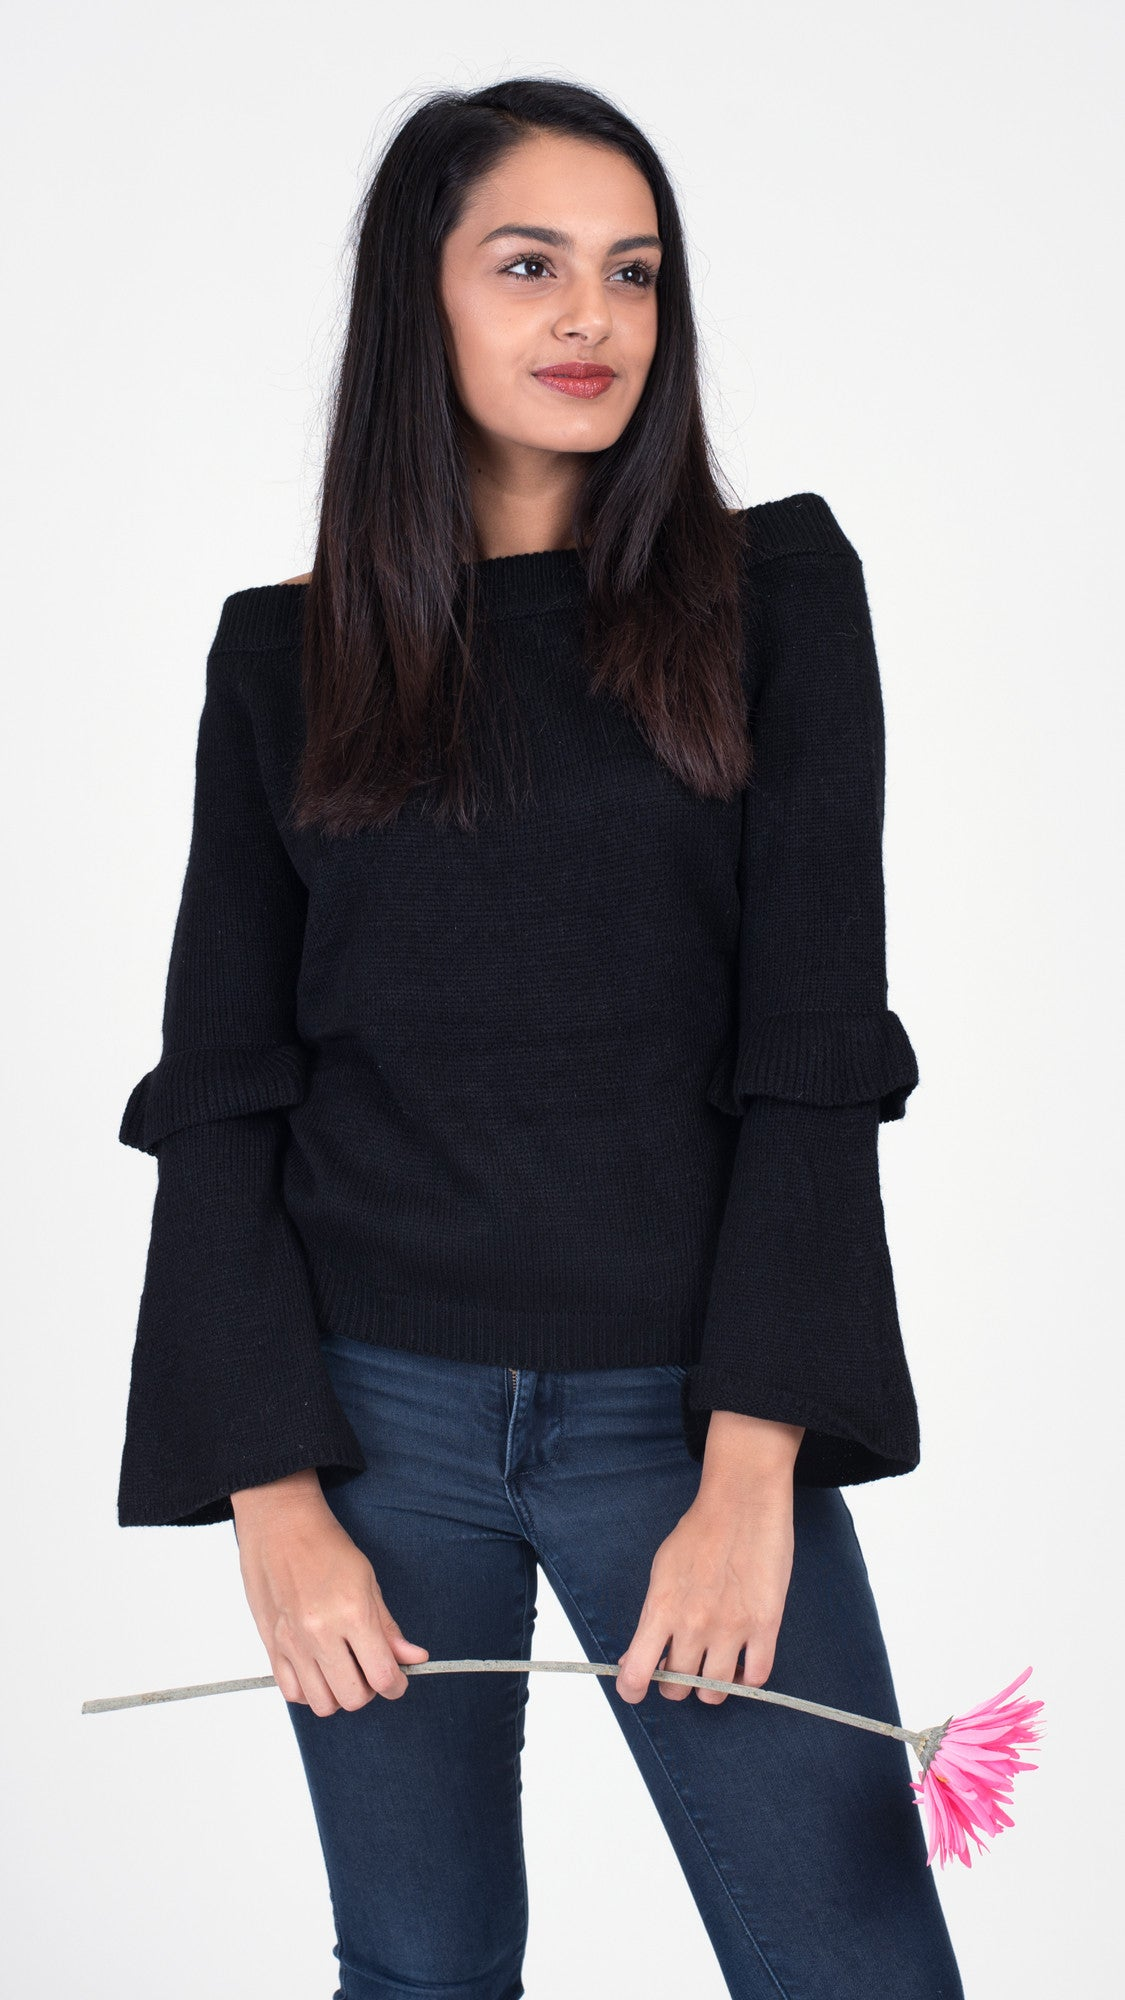 black off the shoulder sweater with bell sleeves and a ruffle at the elbow